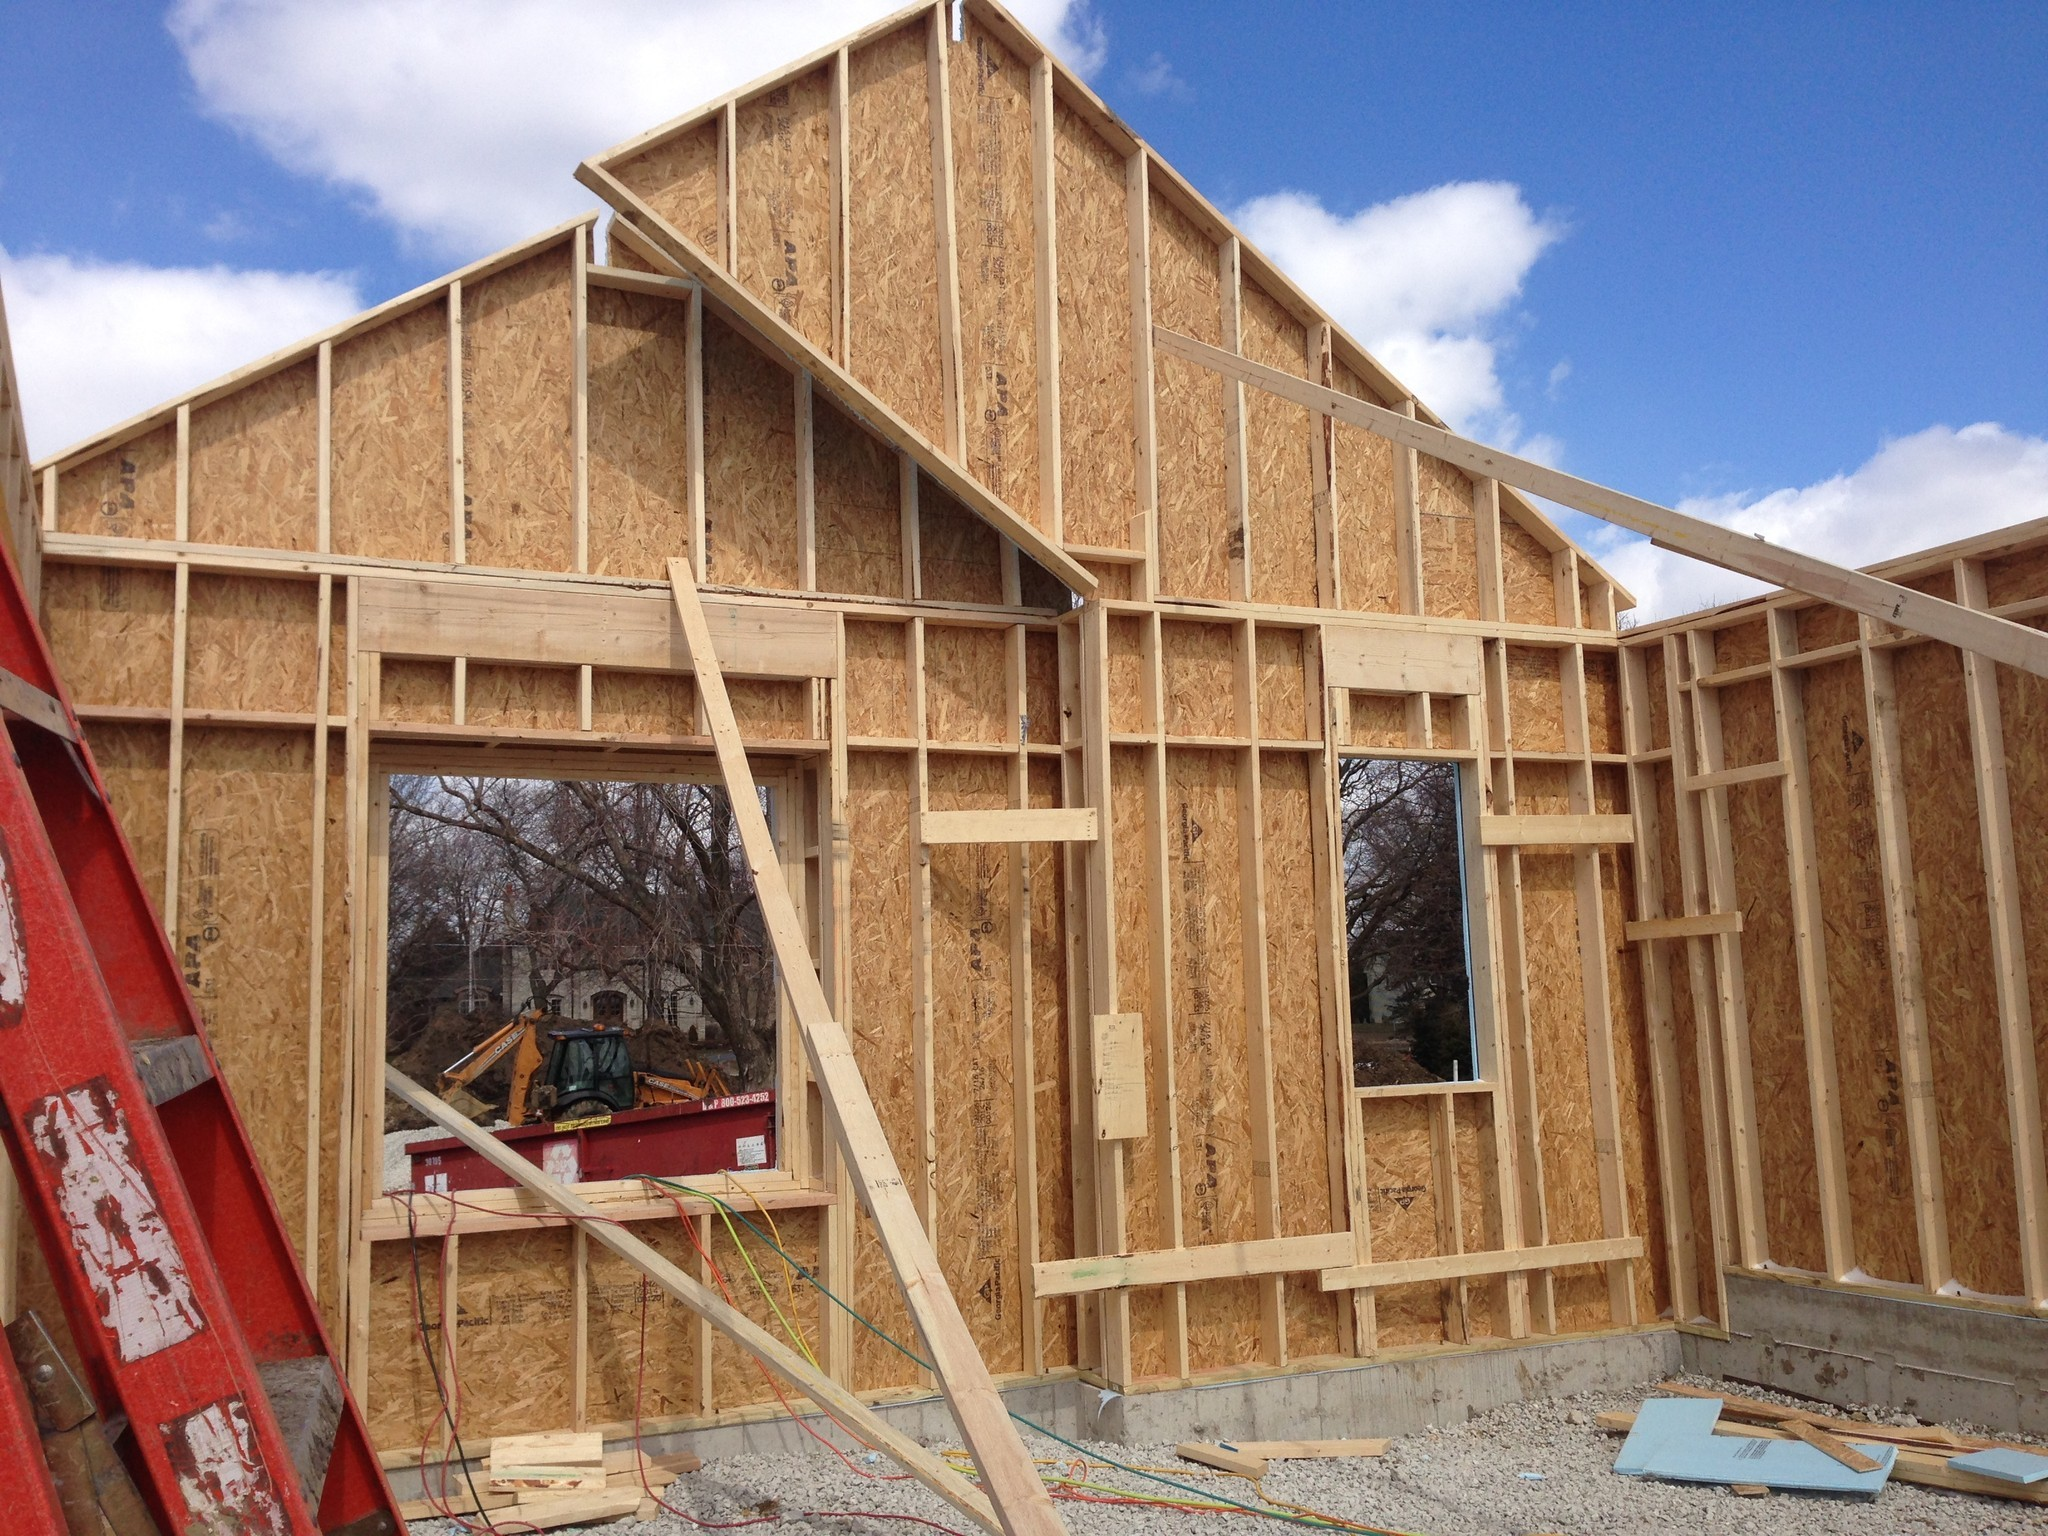 Super Energy Efficient Home to be Built in Naperville